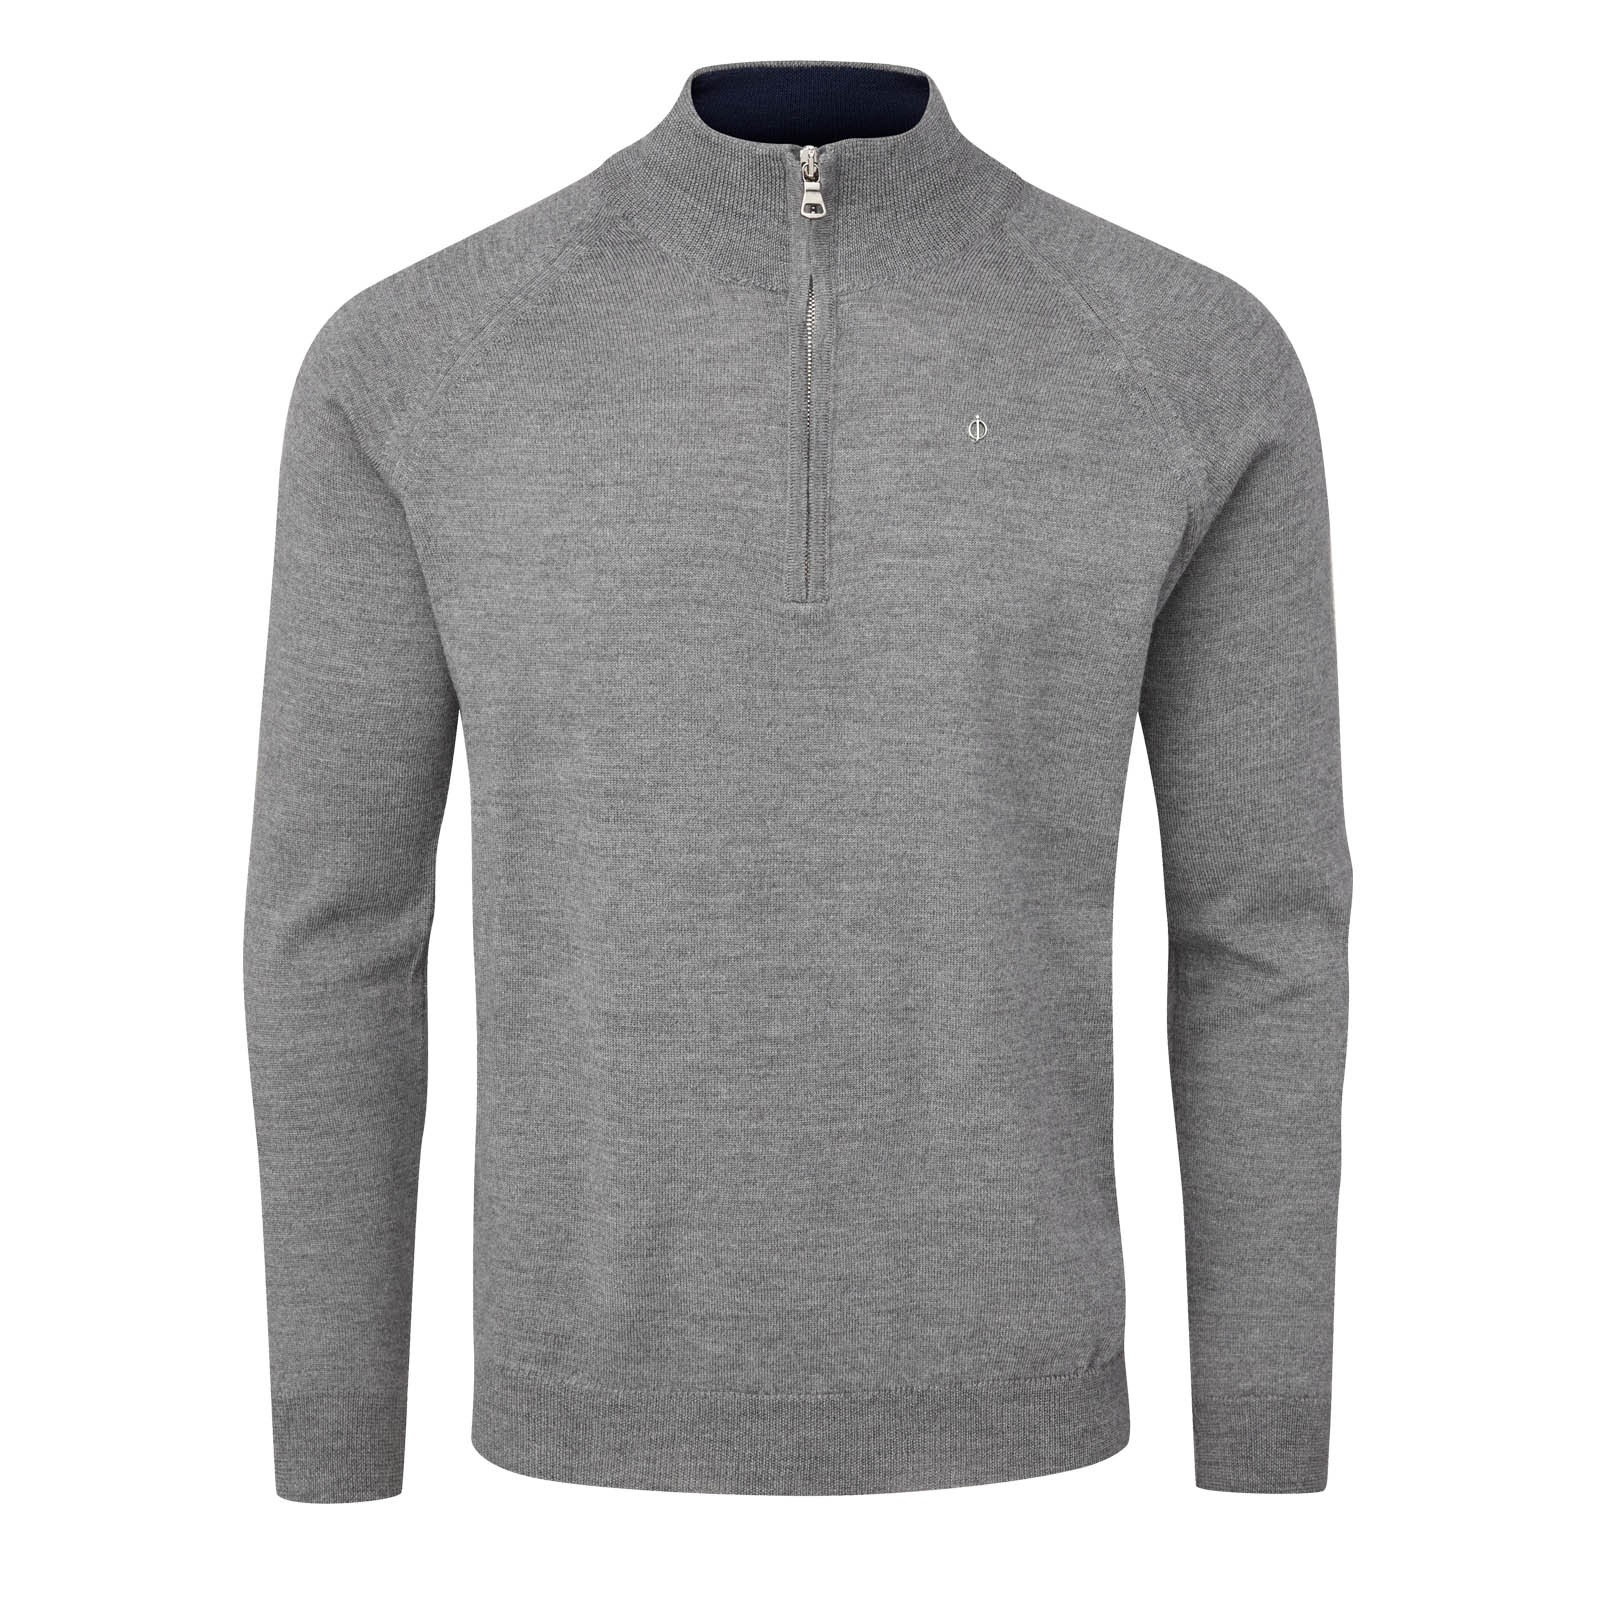 Oscar Jacobson Warwick Pin Sweater